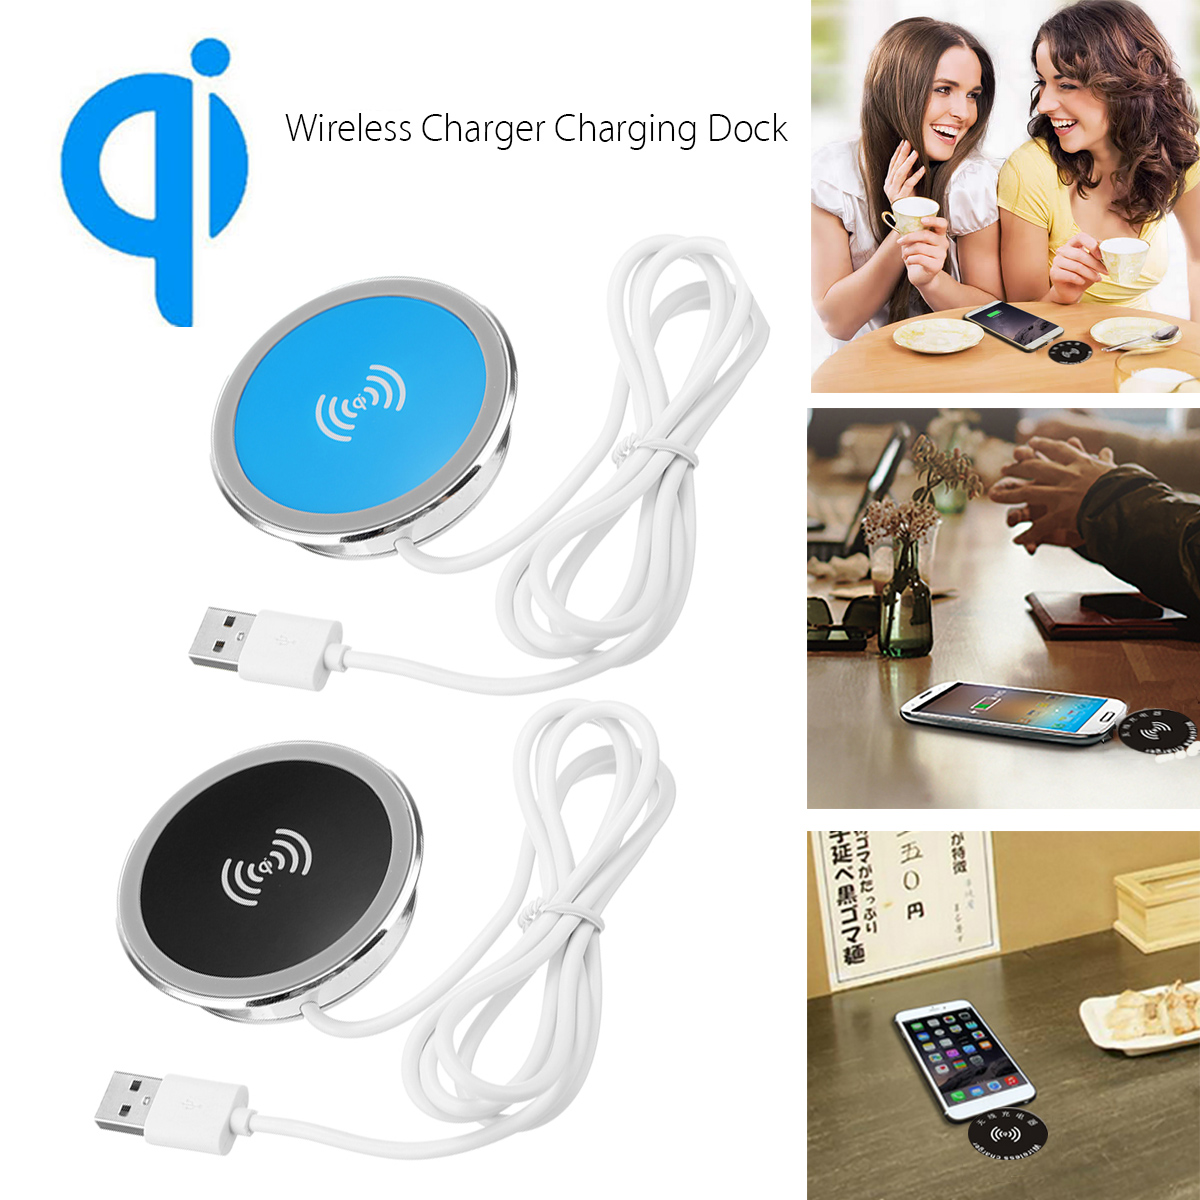 QI Wireless Desk Charger Charging Dock for iphone X/iphone 8 Plus/iphone 8